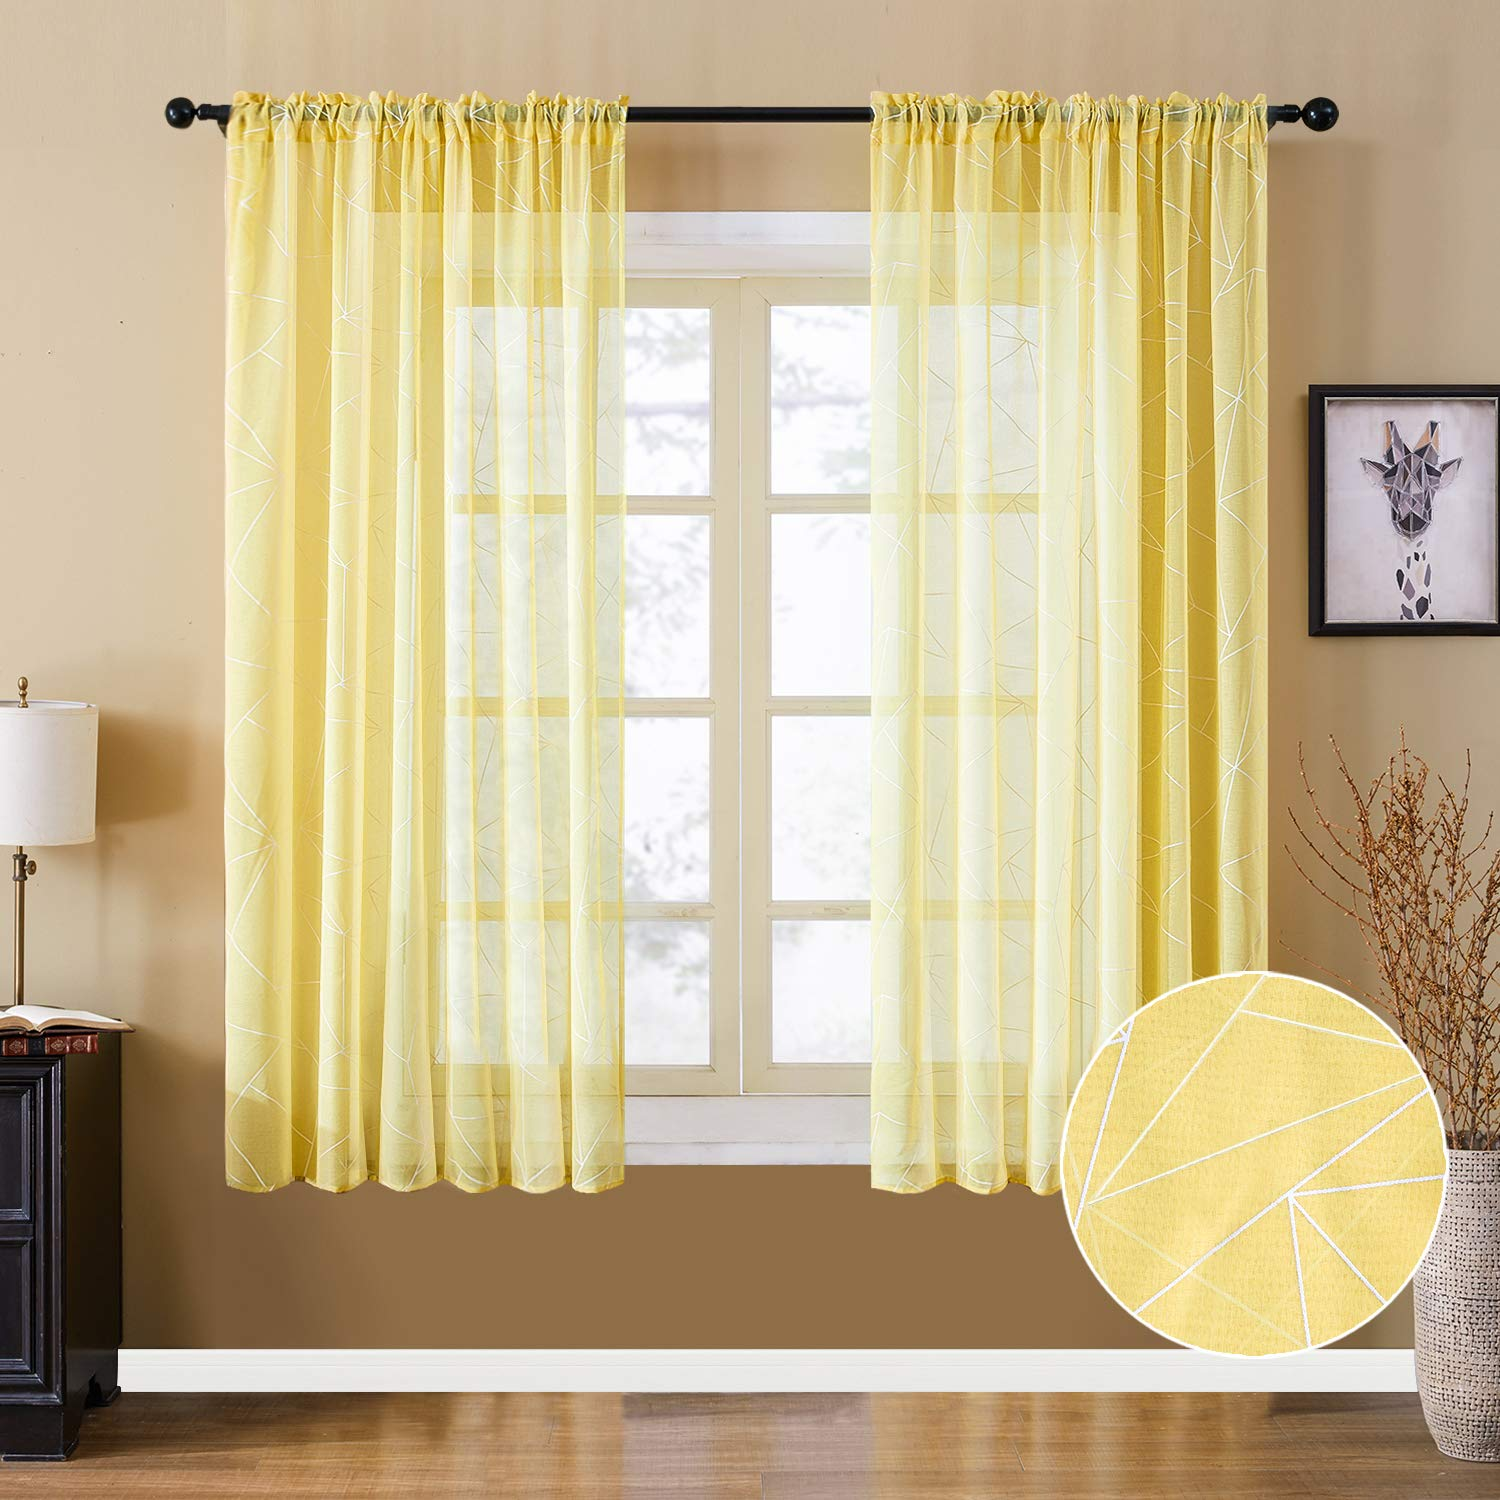 YOKISTG Faux Linen Sheer Curtains 63 Inch Length Rod Pocket Printed Geometry Window Curtains for Bedroom Living Room, Yellow, 2 Panels